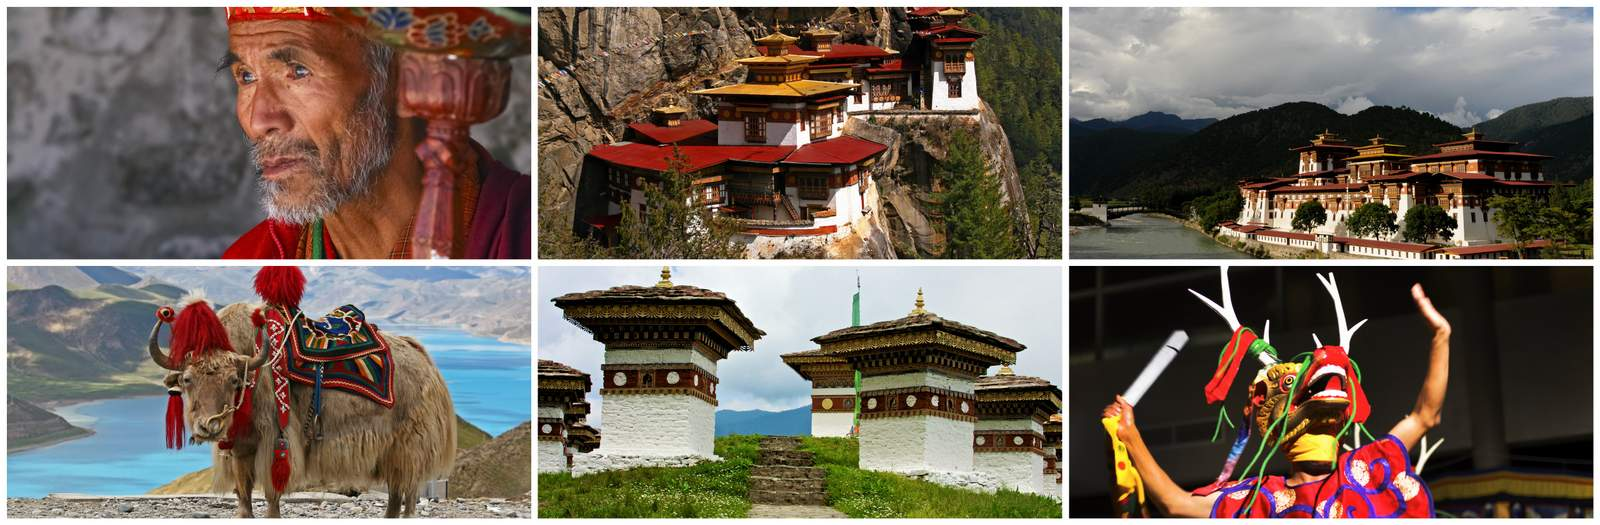 Kingdom of Bhutan